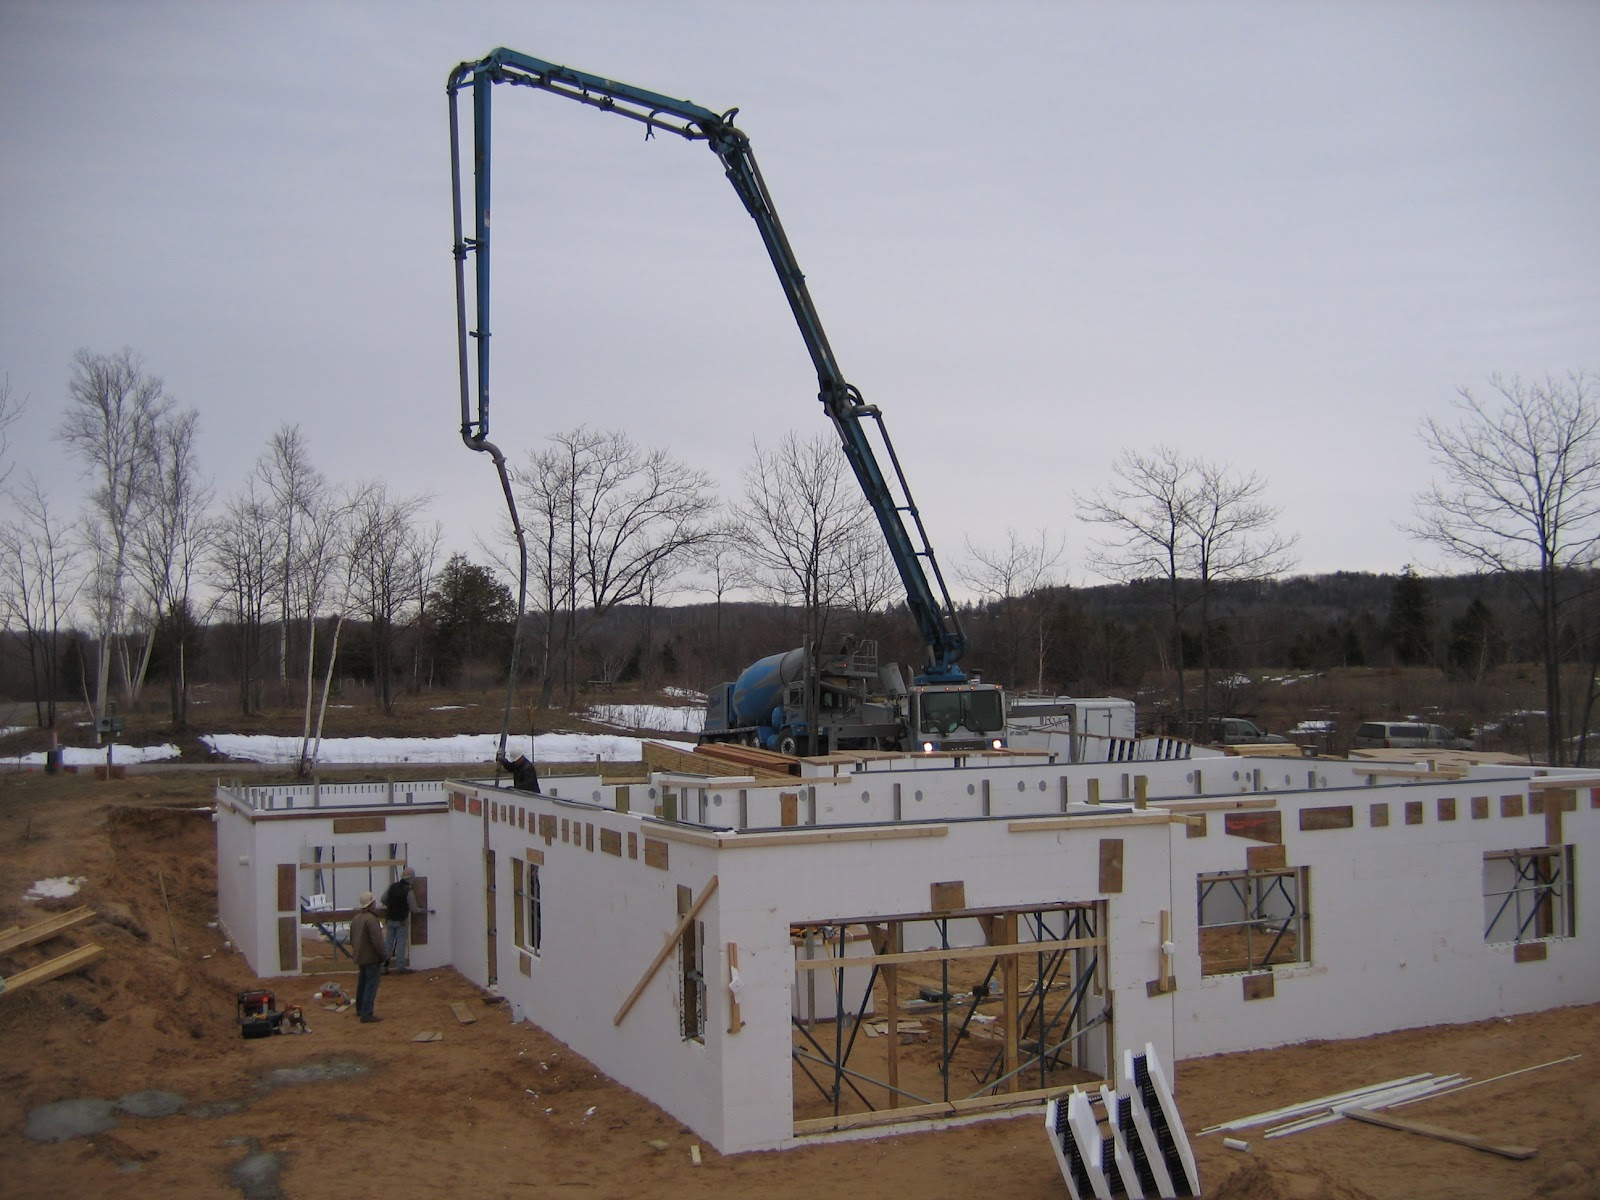 Cheap Icf Design House on timber frame house designs, zero energy house designs, ice house designs, sap house designs, straw bale house designs, log house designs, concrete house designs, wood house designs,